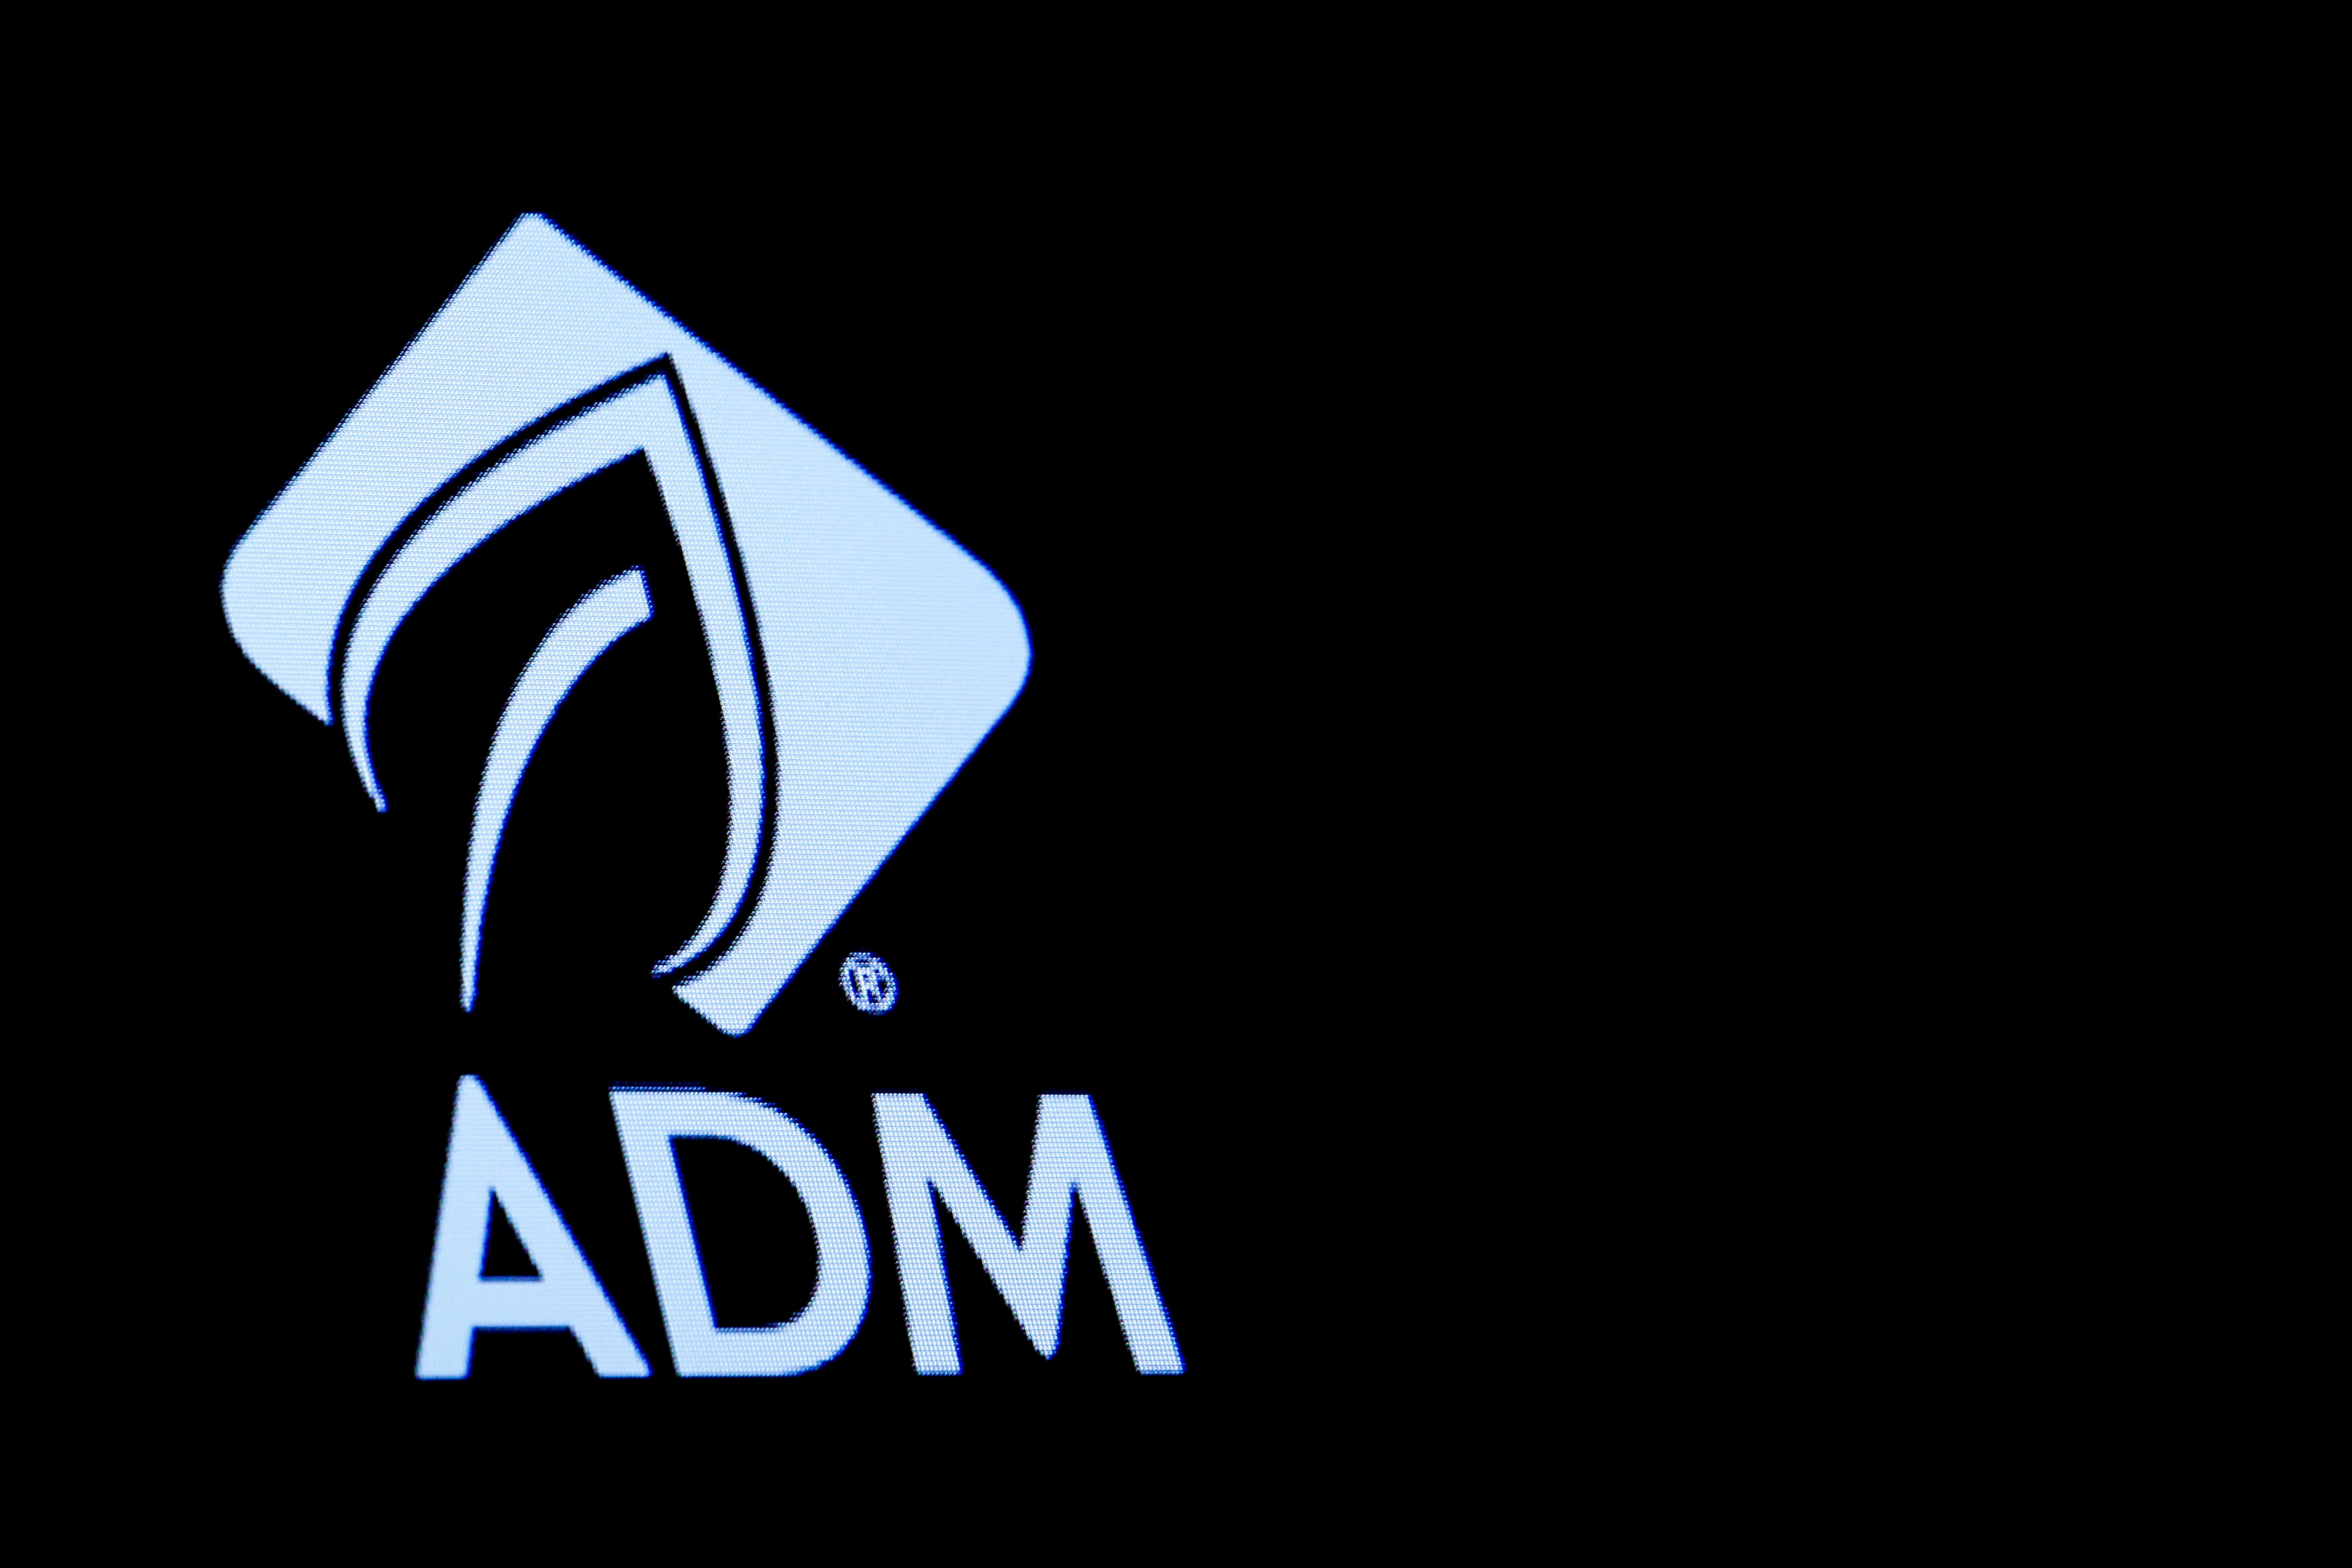 The Archer Daniels Midland Co. (ADM) logo is displayed on a screen on the floor of the New York Stock Exchange (NYSE) in New York, U.S., May 3, 2018. REUTERS/Brendan McDermid/File Photo